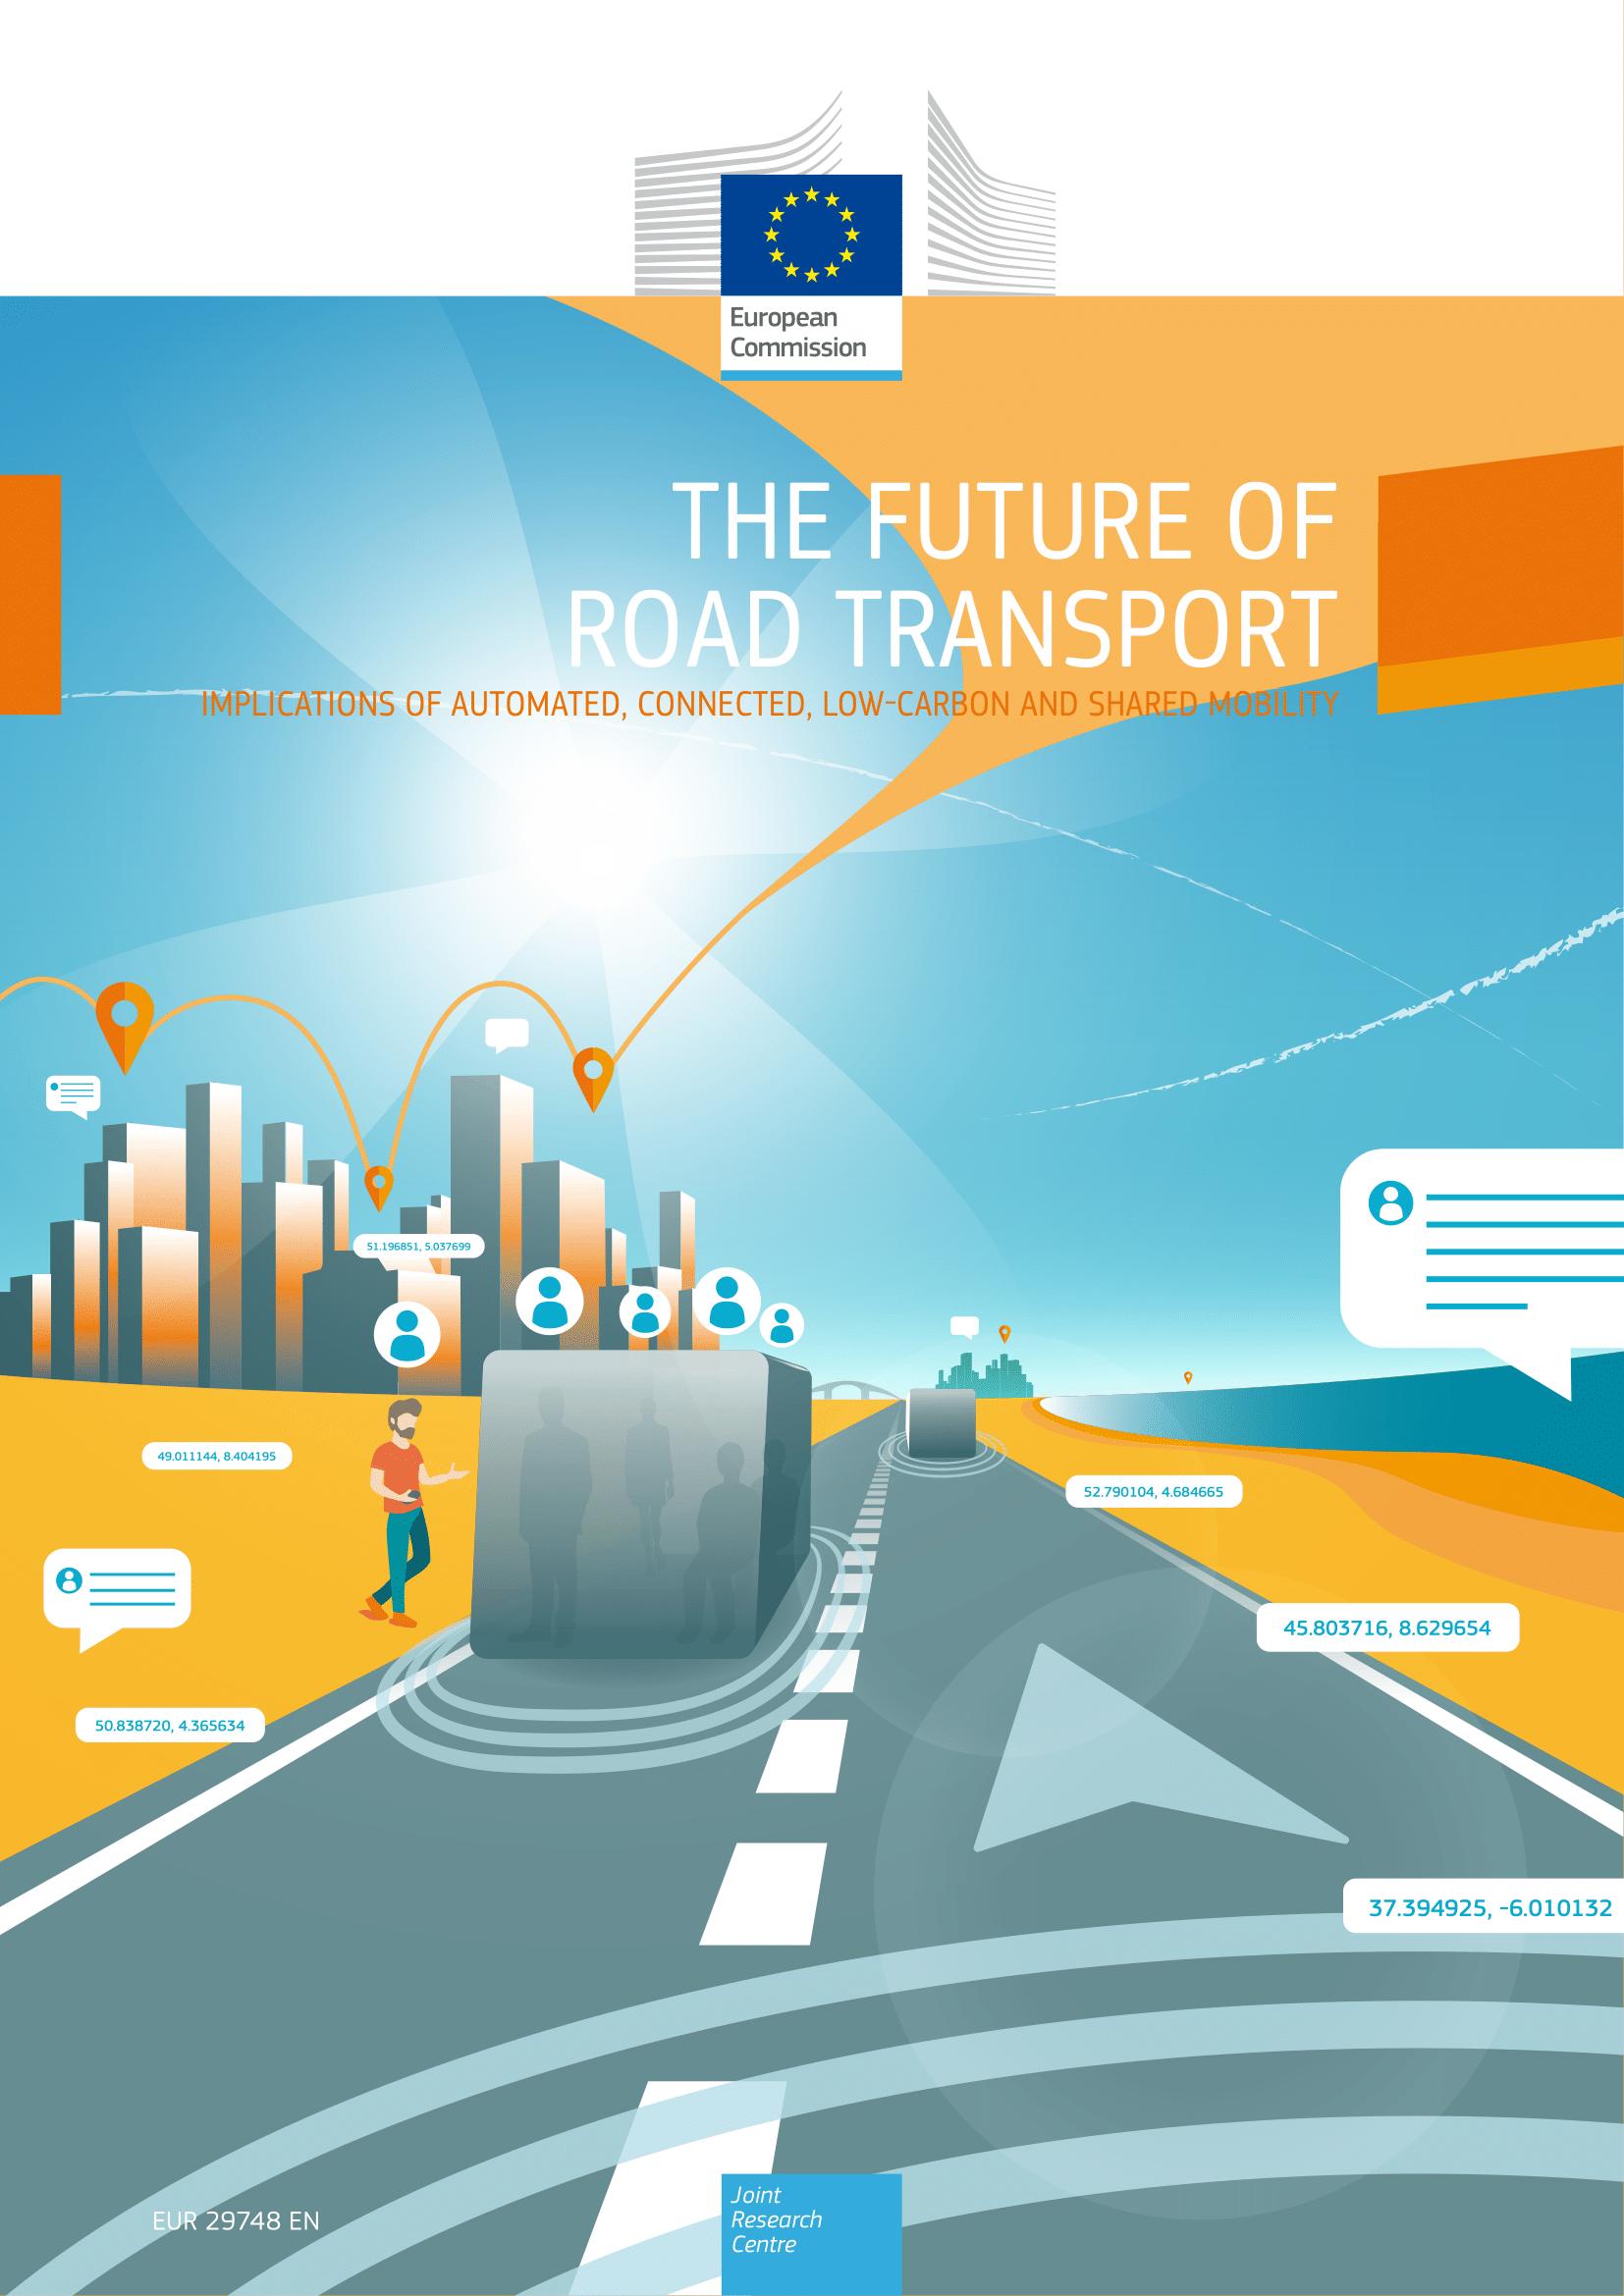 The future of road transport